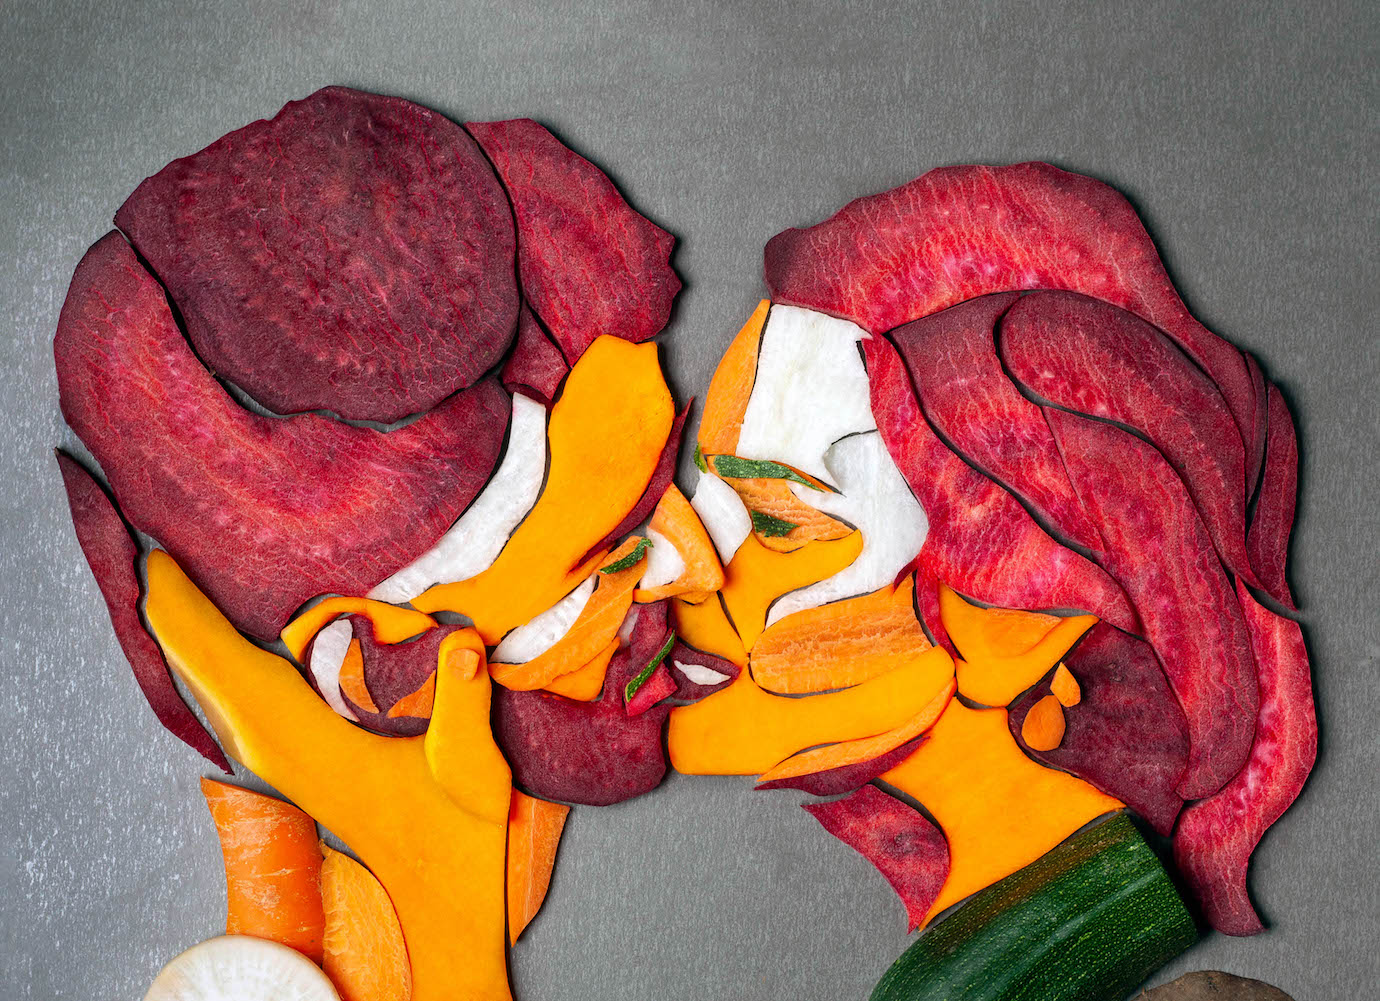 When lunch becomes art: figurative artworks made entirely from food